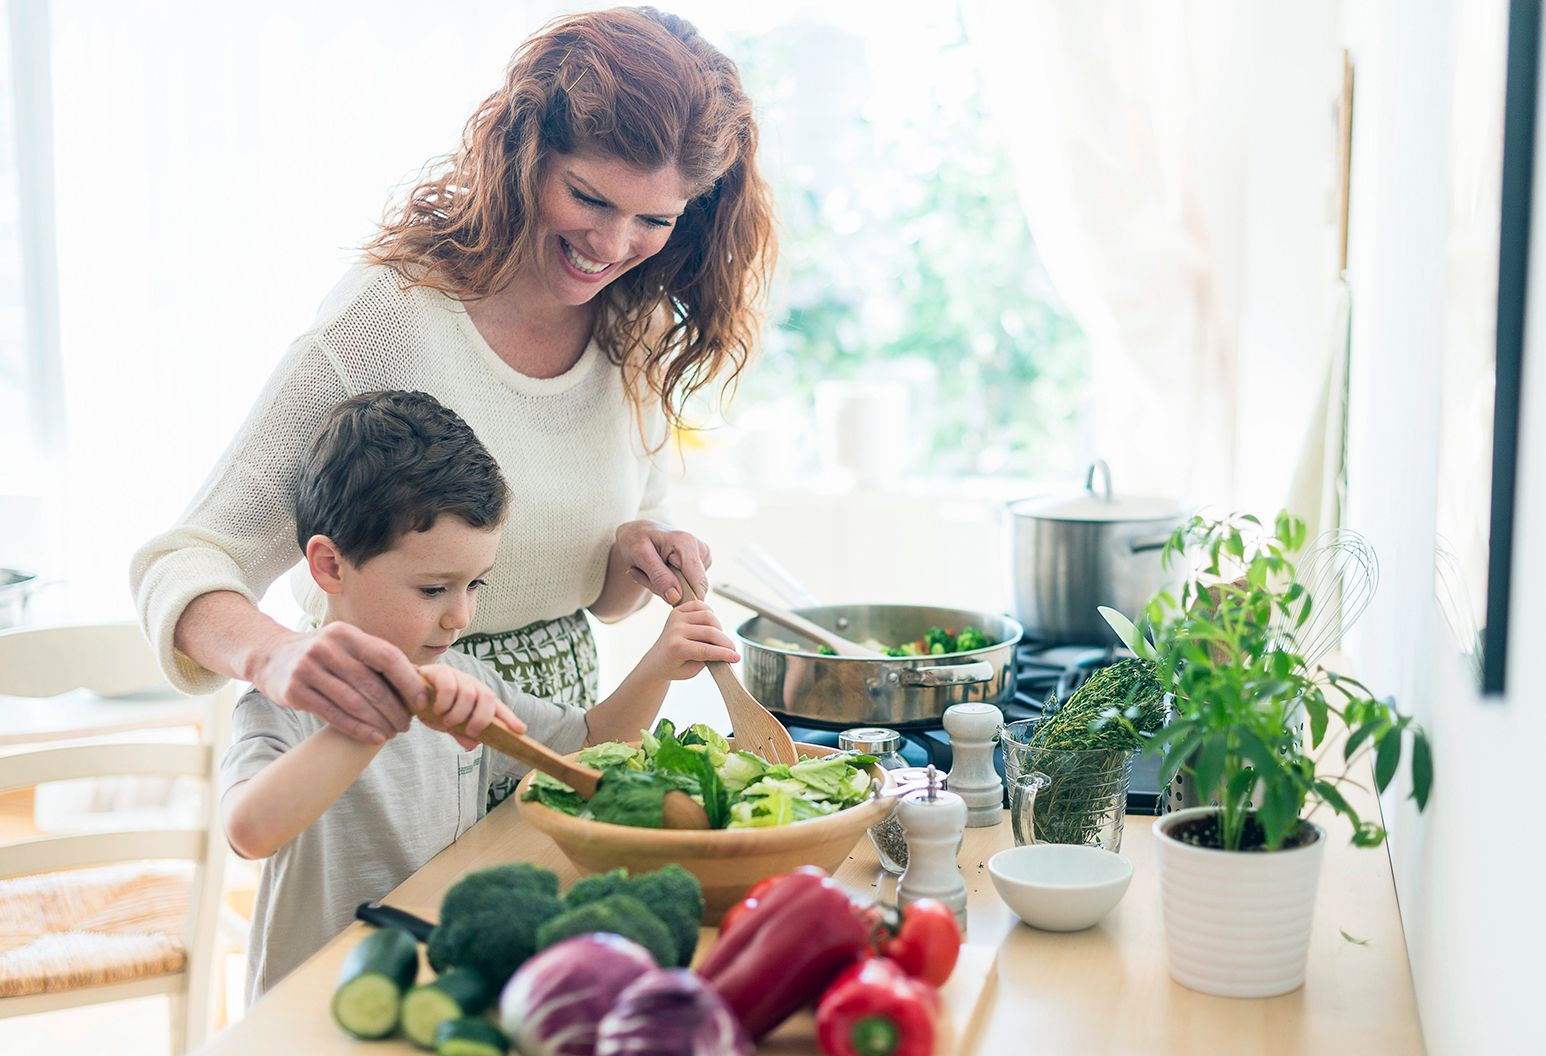 A young boy and his mother are in a kitchen making a salad together. There is something cooking on the stove and vegetables on a butting board.